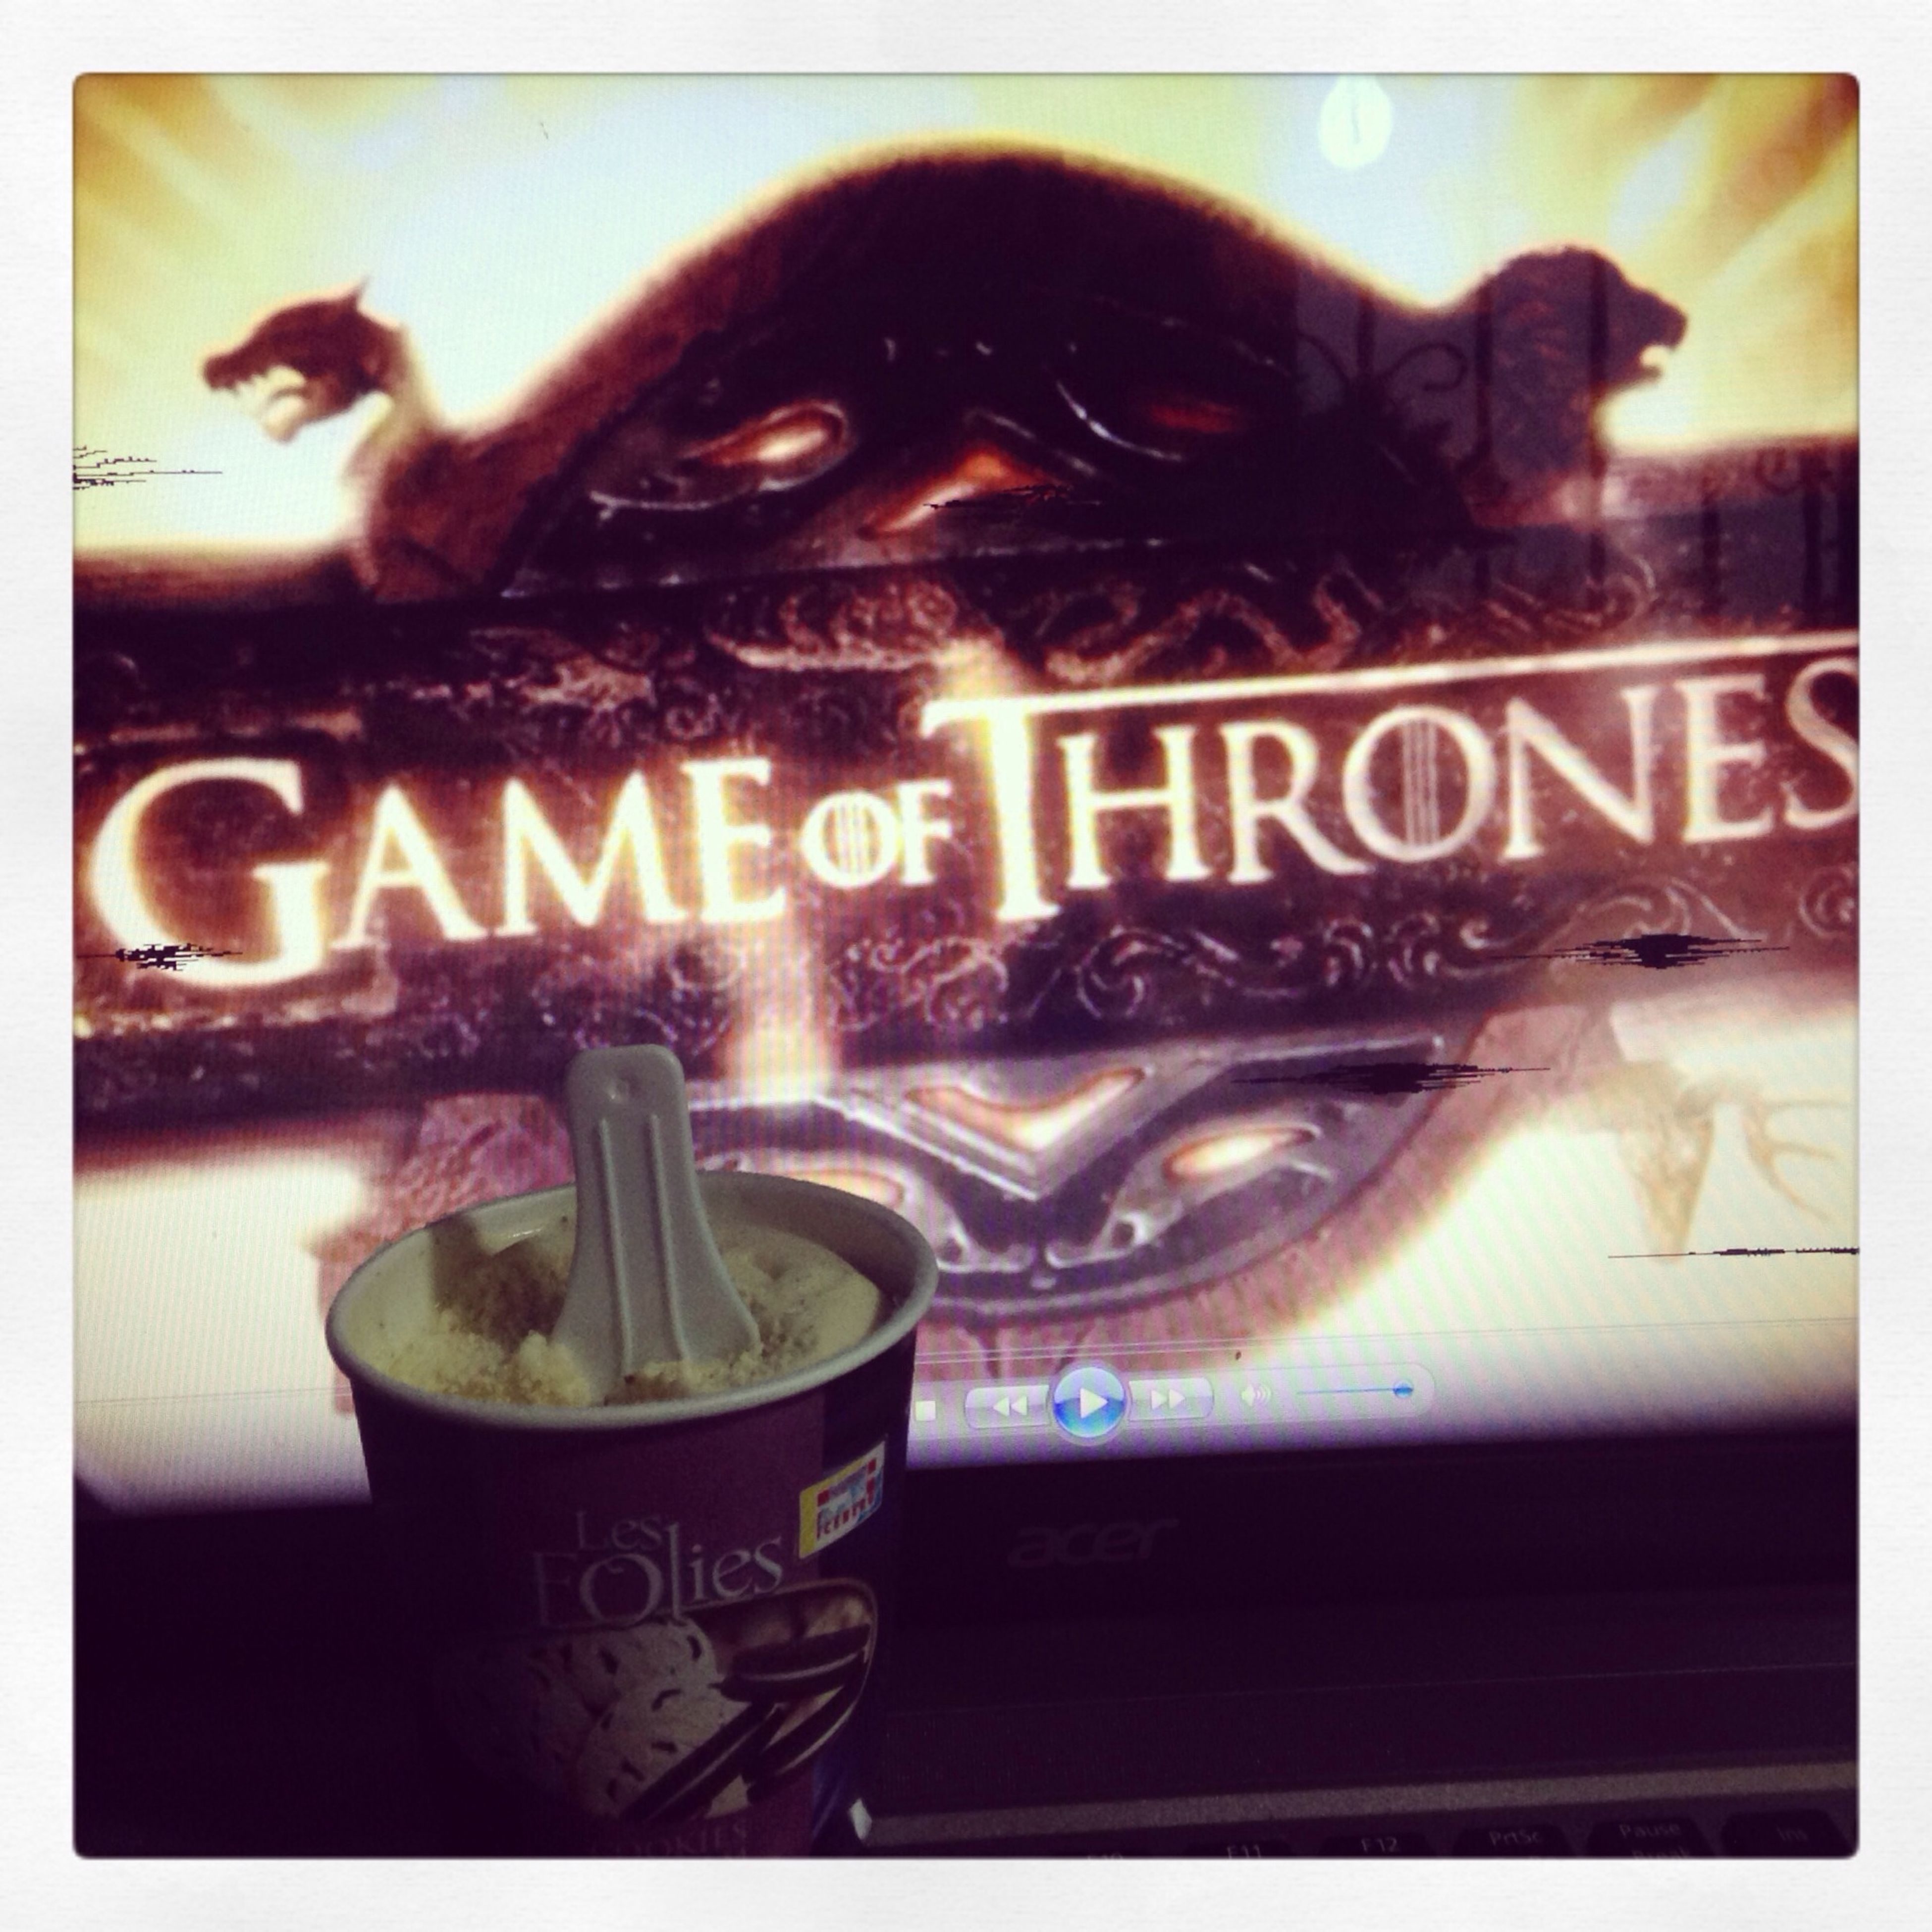 Youmustwatch Gameofthrones Amazingseries Housestark love love love LOVE it ! I will begin season 3 soon! Can't wait to finish the second one!!